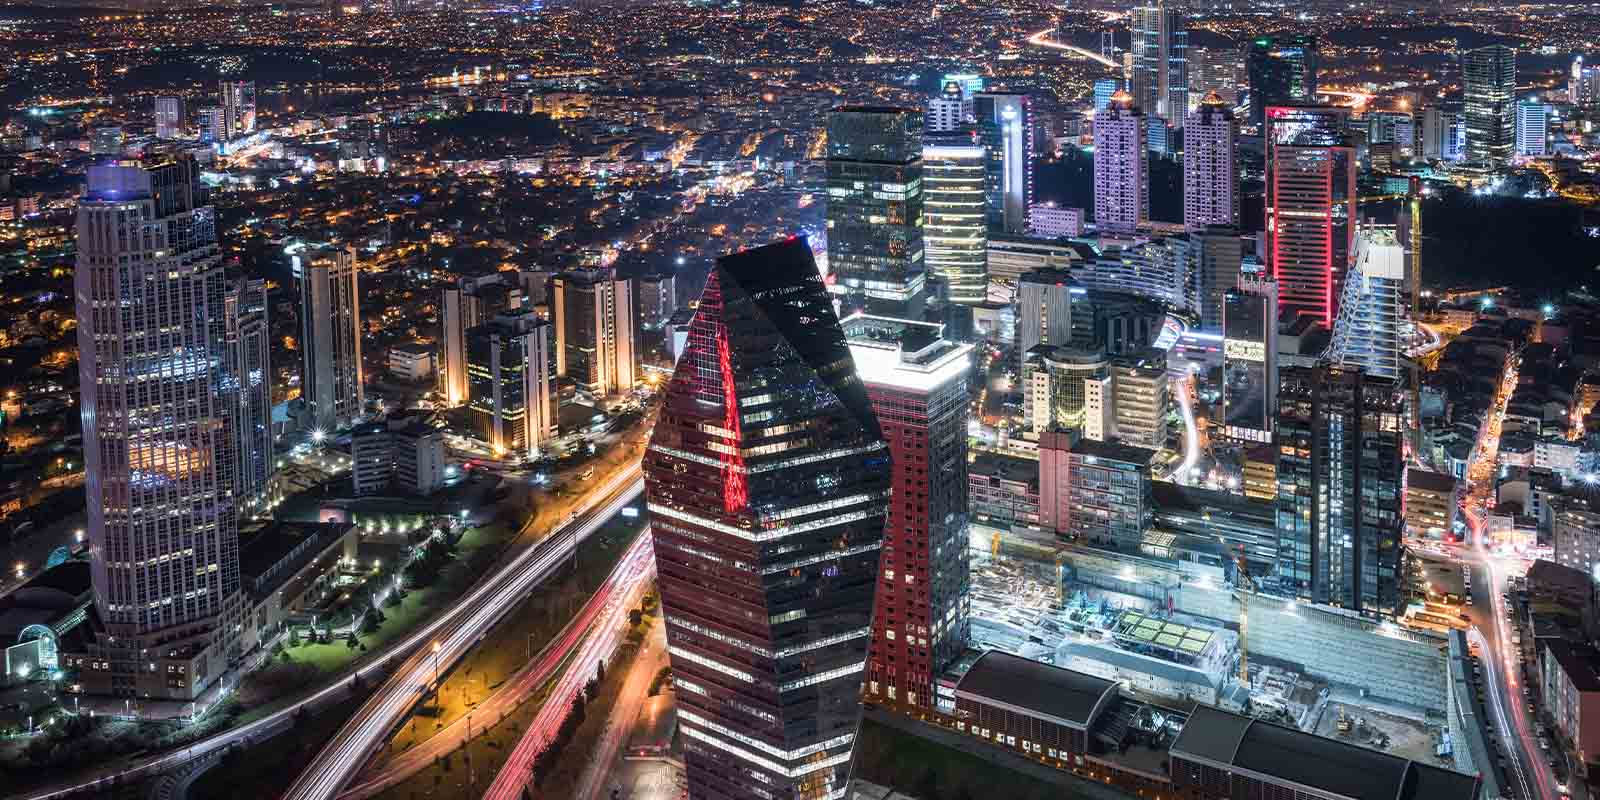 Aerial view of Istanbul city at night